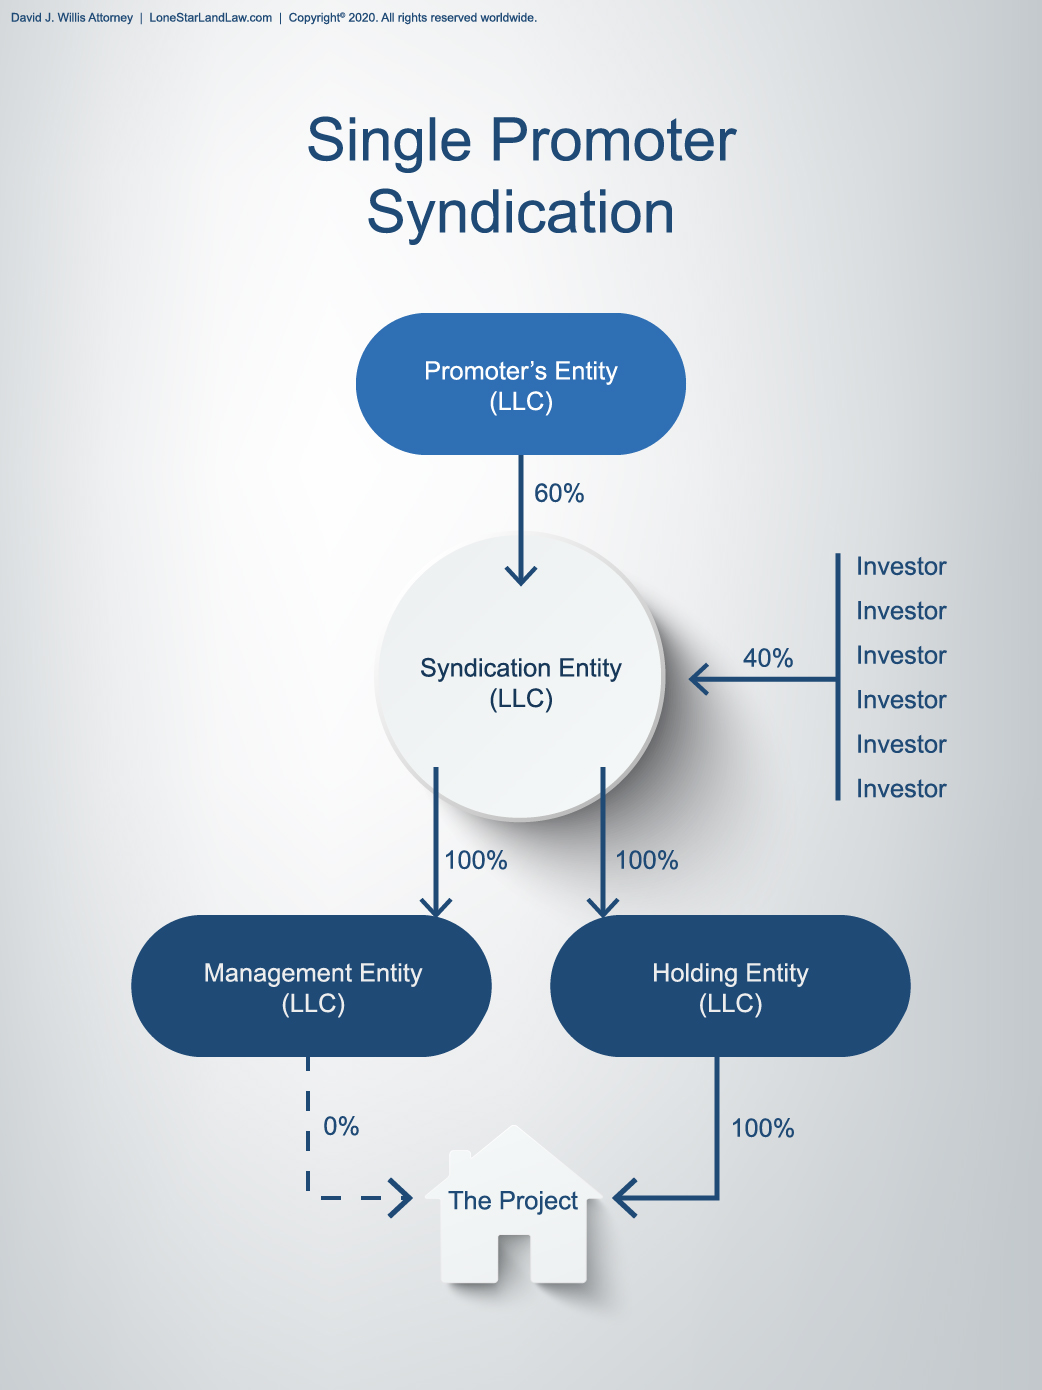 Single Promoter Syndication - Asset Protection